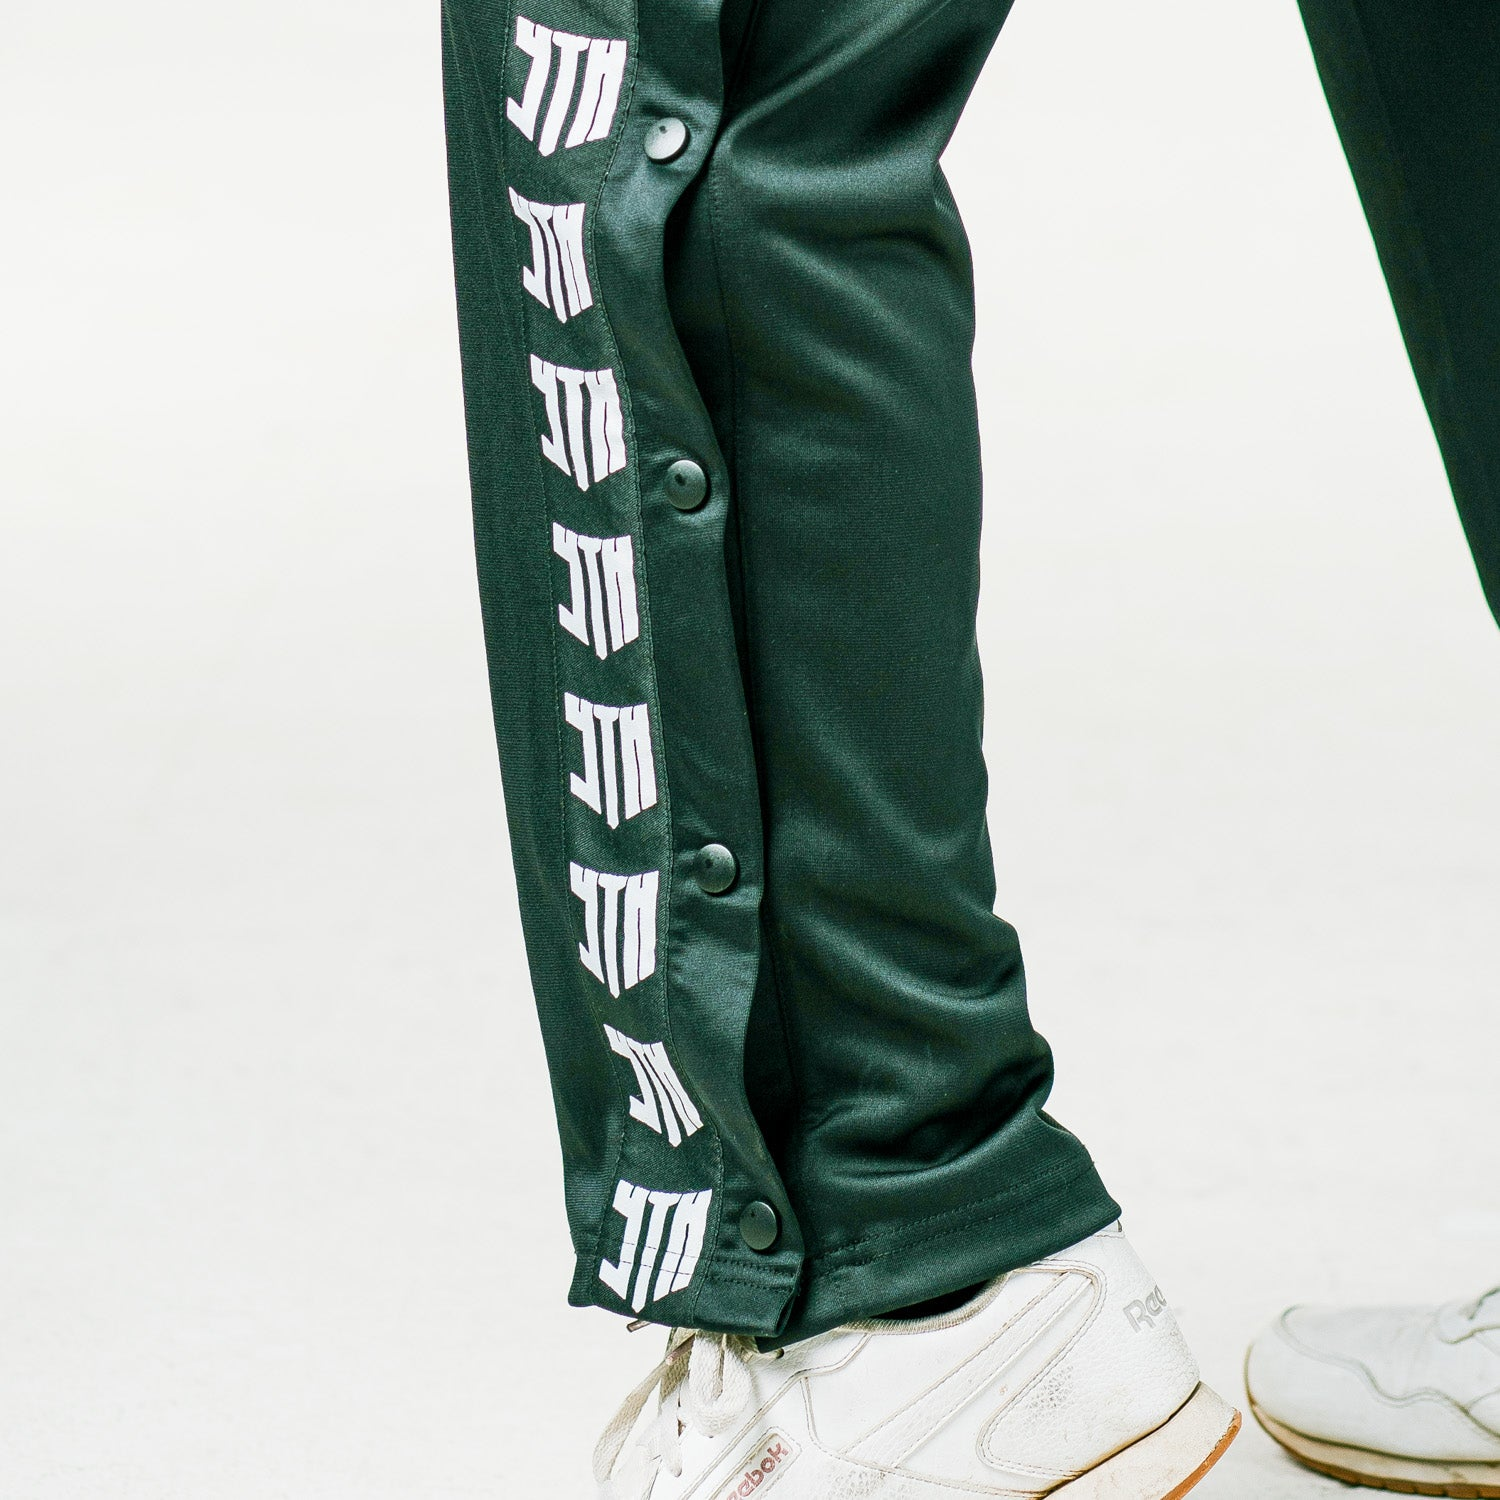 'YTH' Tear Away Track Pants